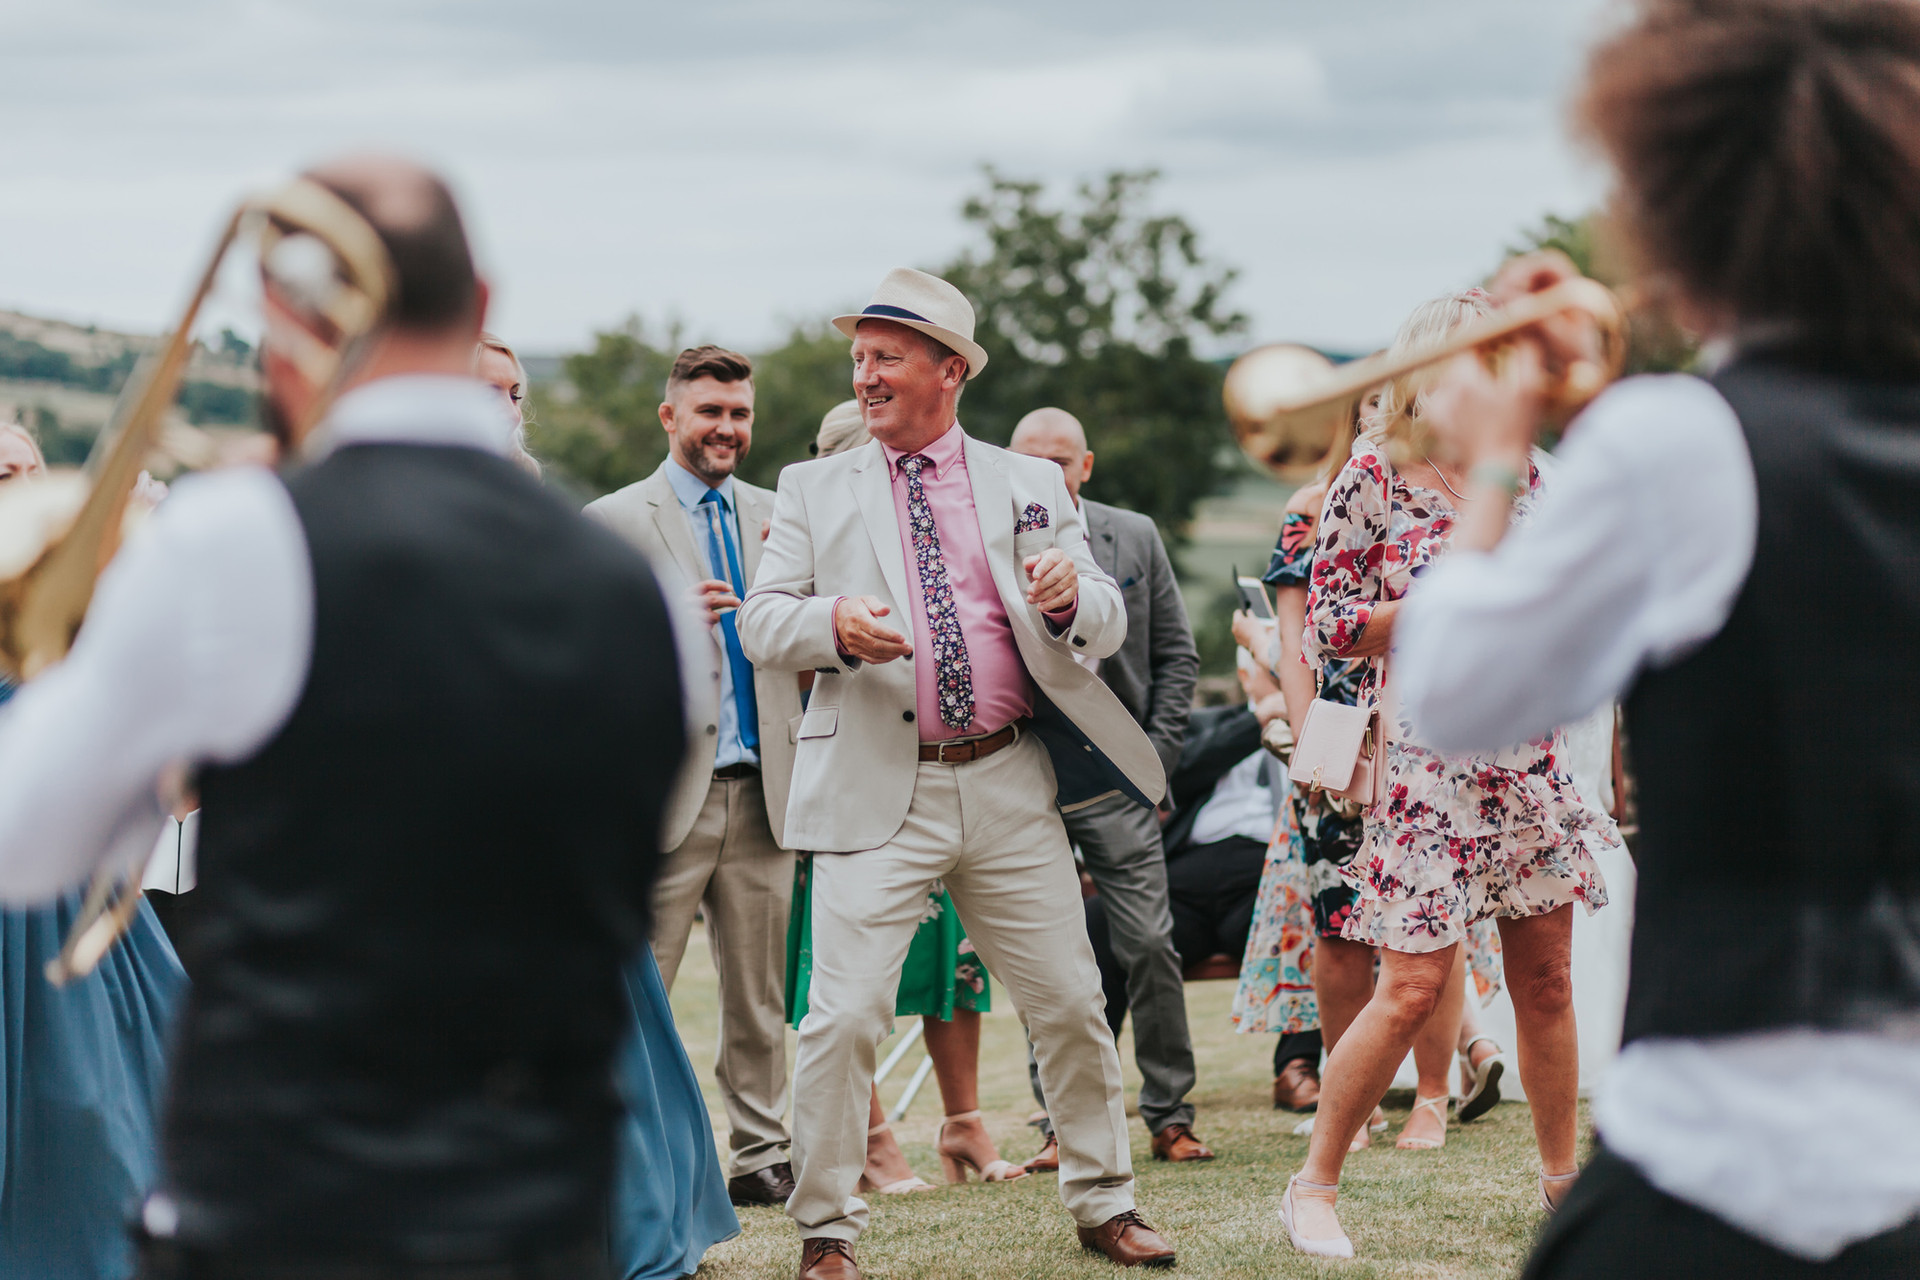 Wedding guests dancing outside at Danby Castle